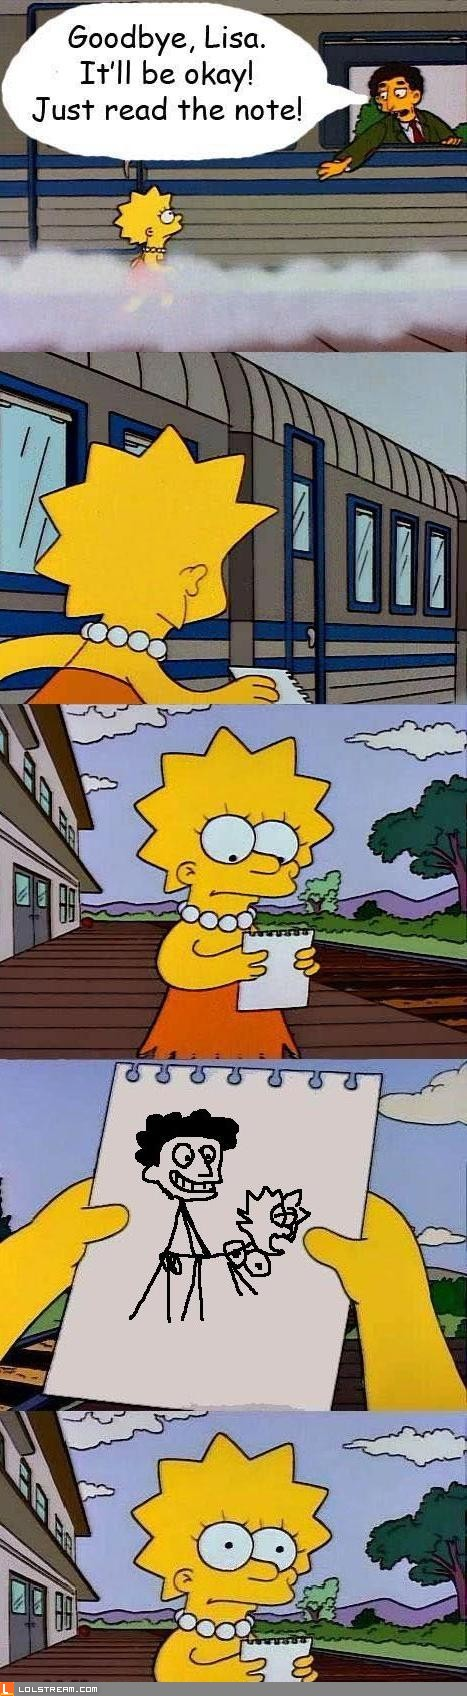 Goodbye, Lisa.